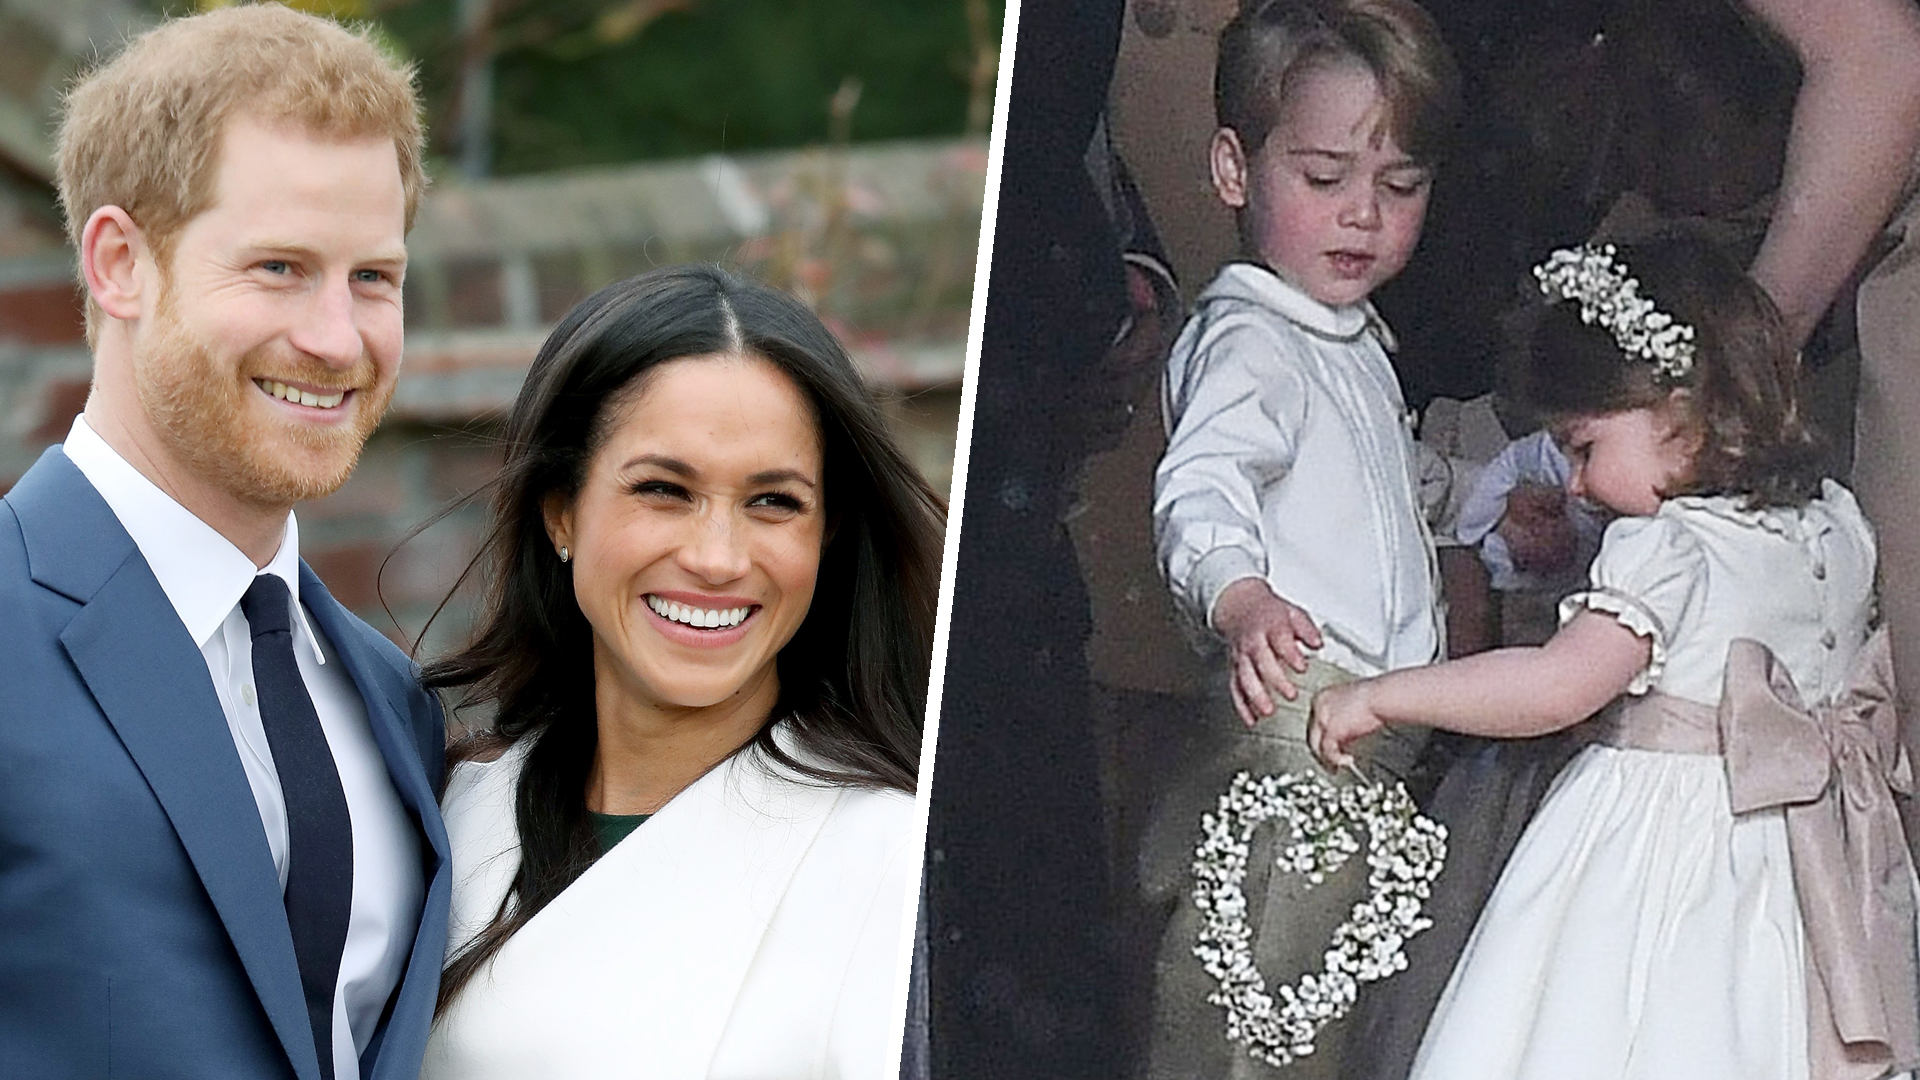 Prince Harry Wedding.Will Prince George Princess Charlotte Play Roles In Prince Harry S